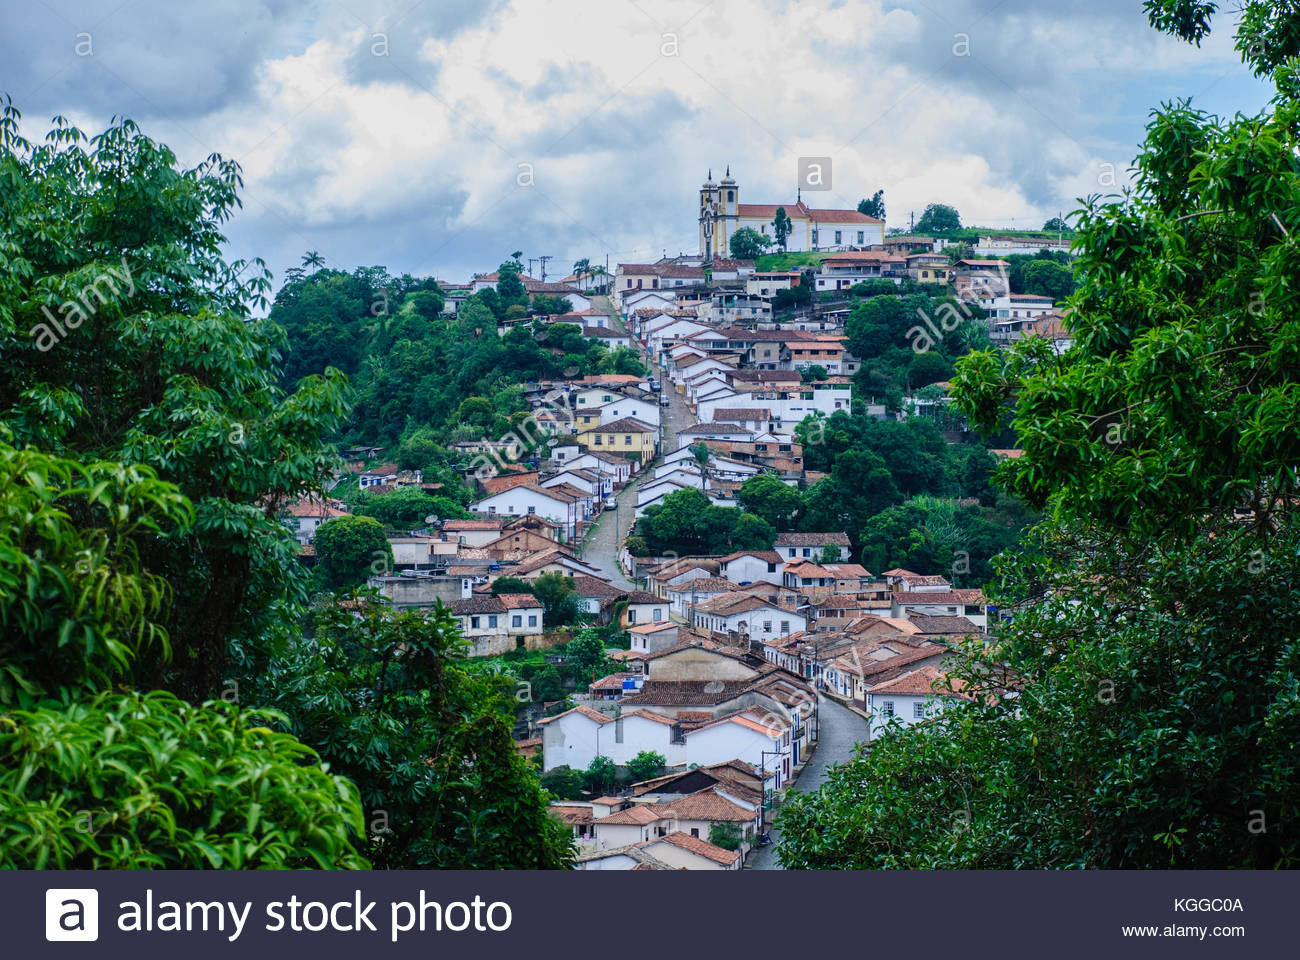 Amazing landscape in historic medieval city, on Brasil. On shot, appears a blue cloud sky, trees, mountains, vintage - Stock Image